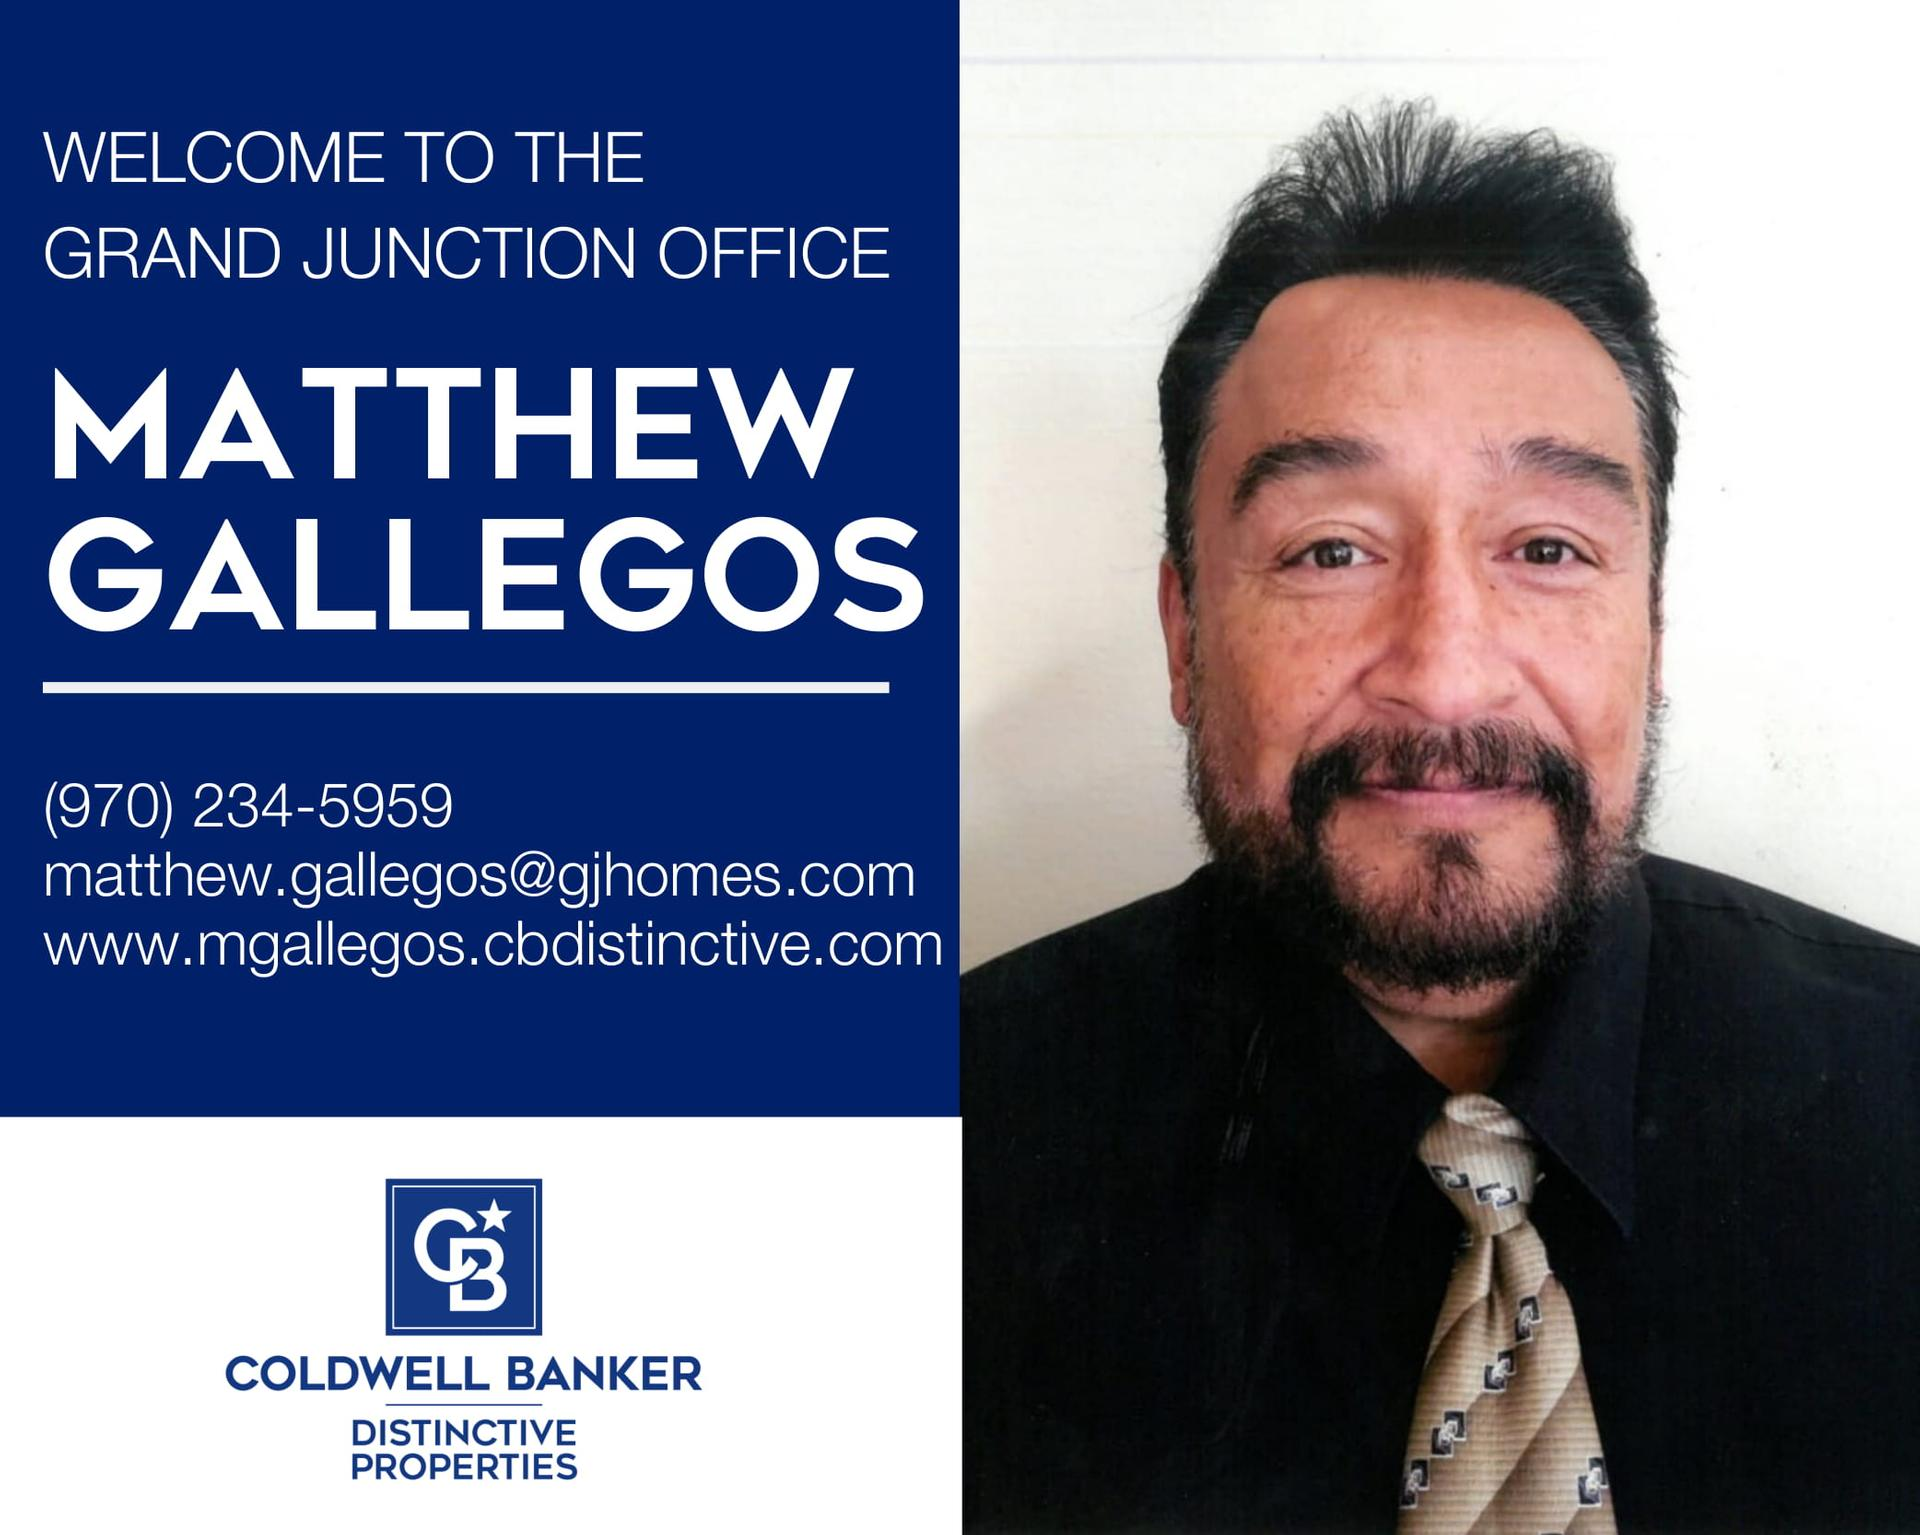 Please help us welcome Matthew Gallegos to our Coldwell Banker family! Main Photo